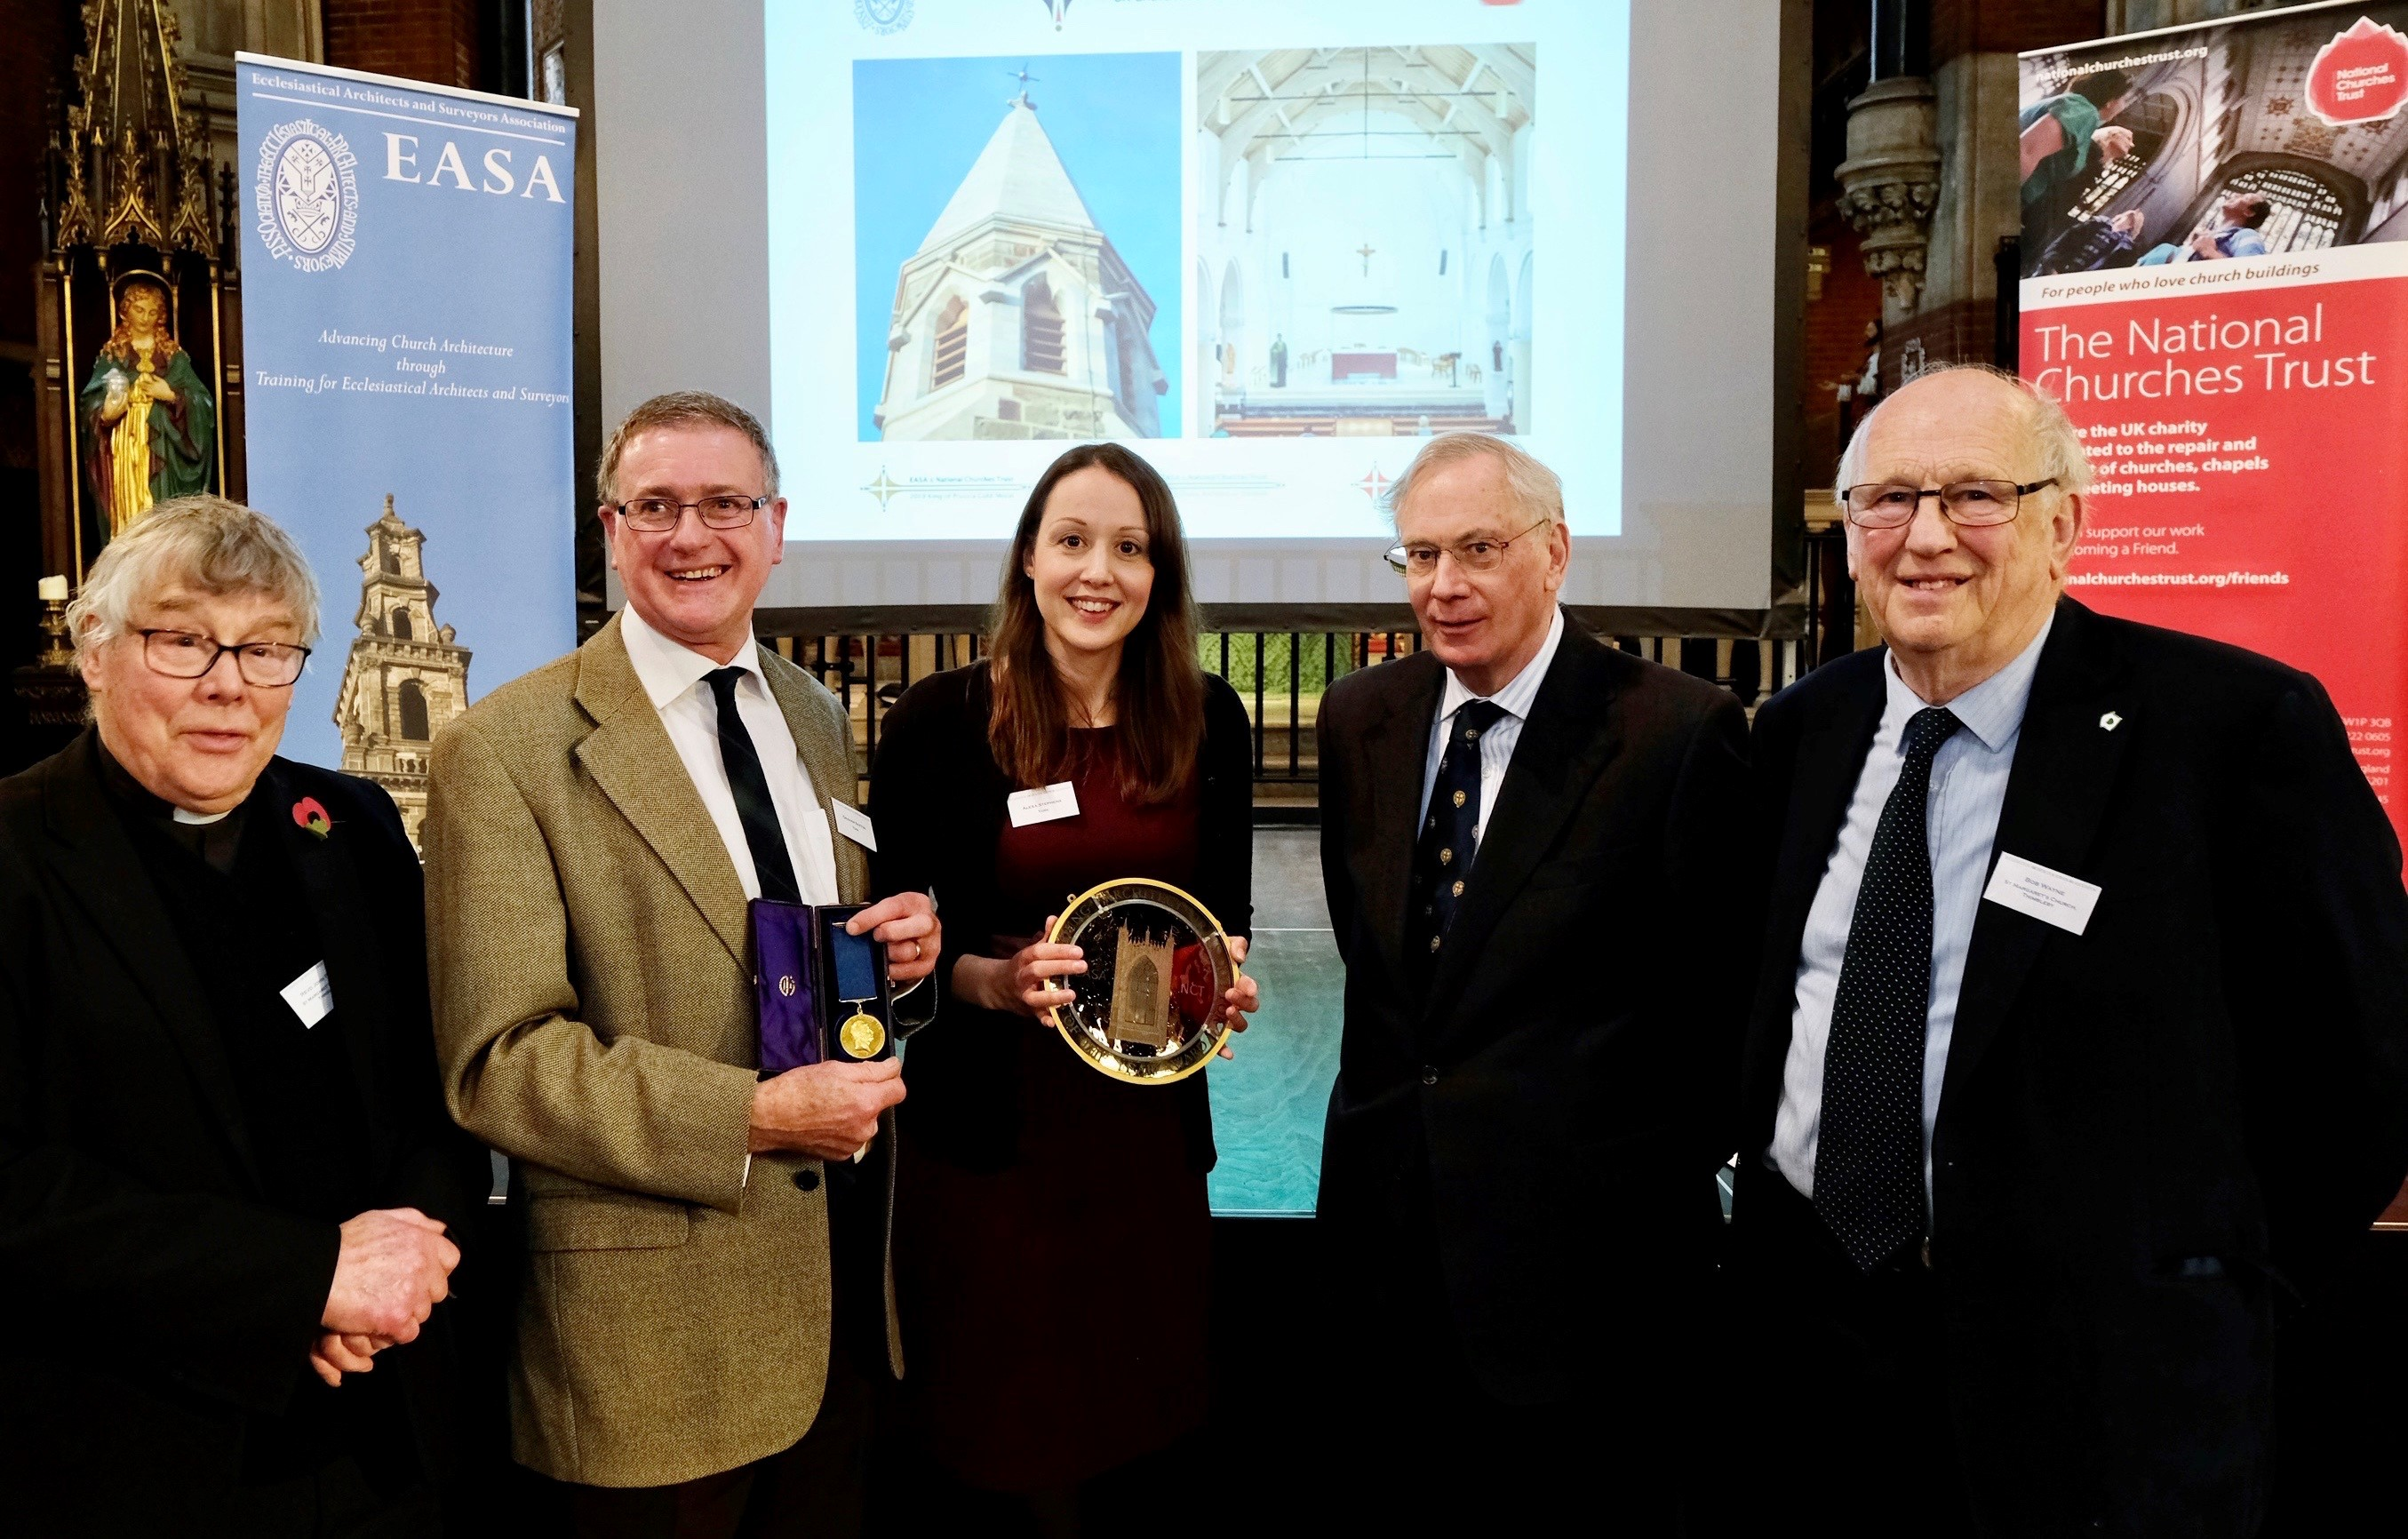 2019 King of Prussia Gold Medal Winners with HRH The Duke of Gloucester